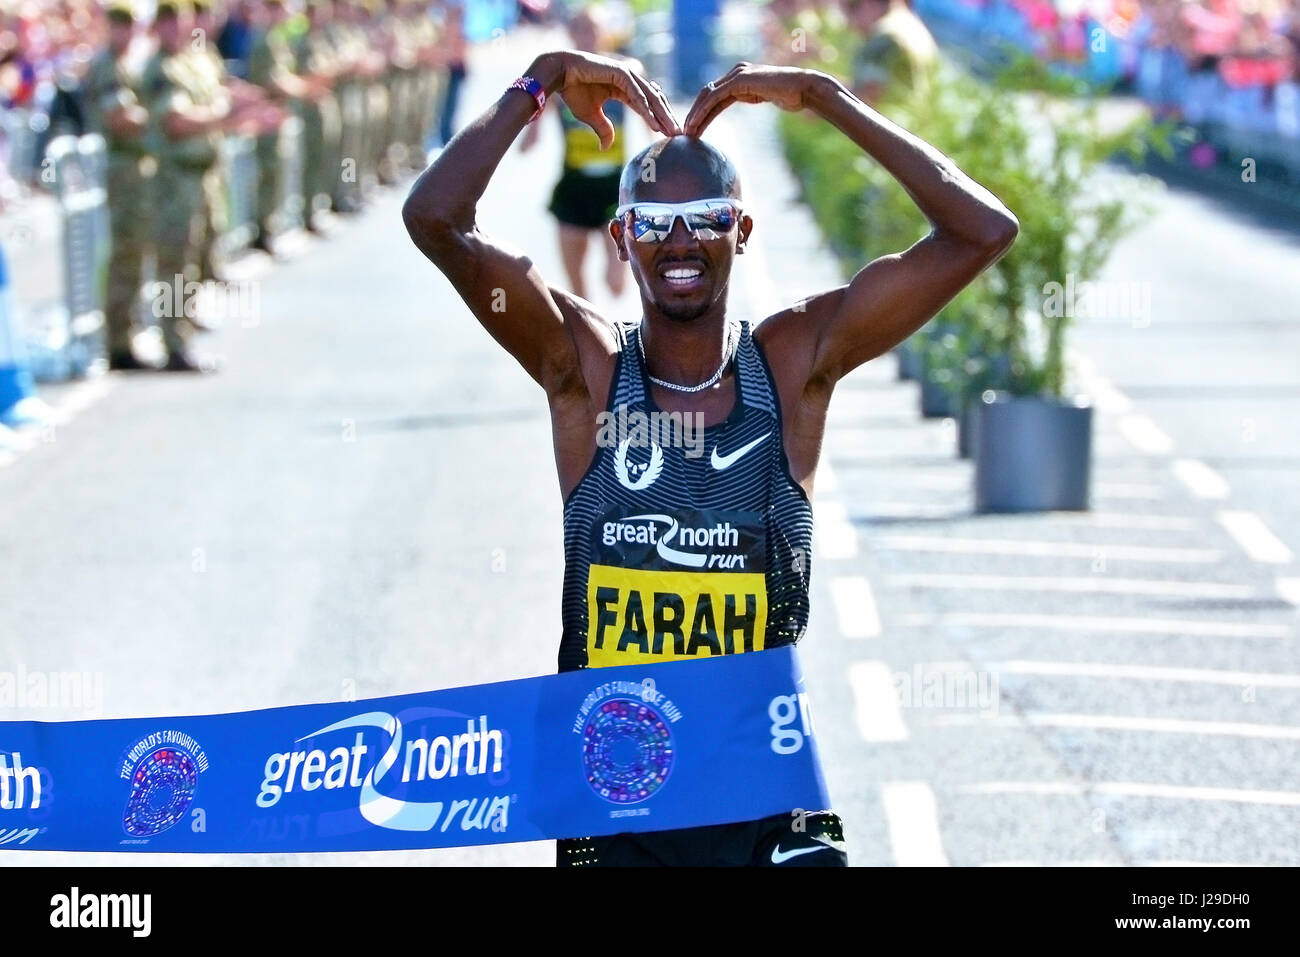 Four-times Olympic gold medallist Mo Farah winning the Great North Run, Sunday 11 September 2016 - Stock Image